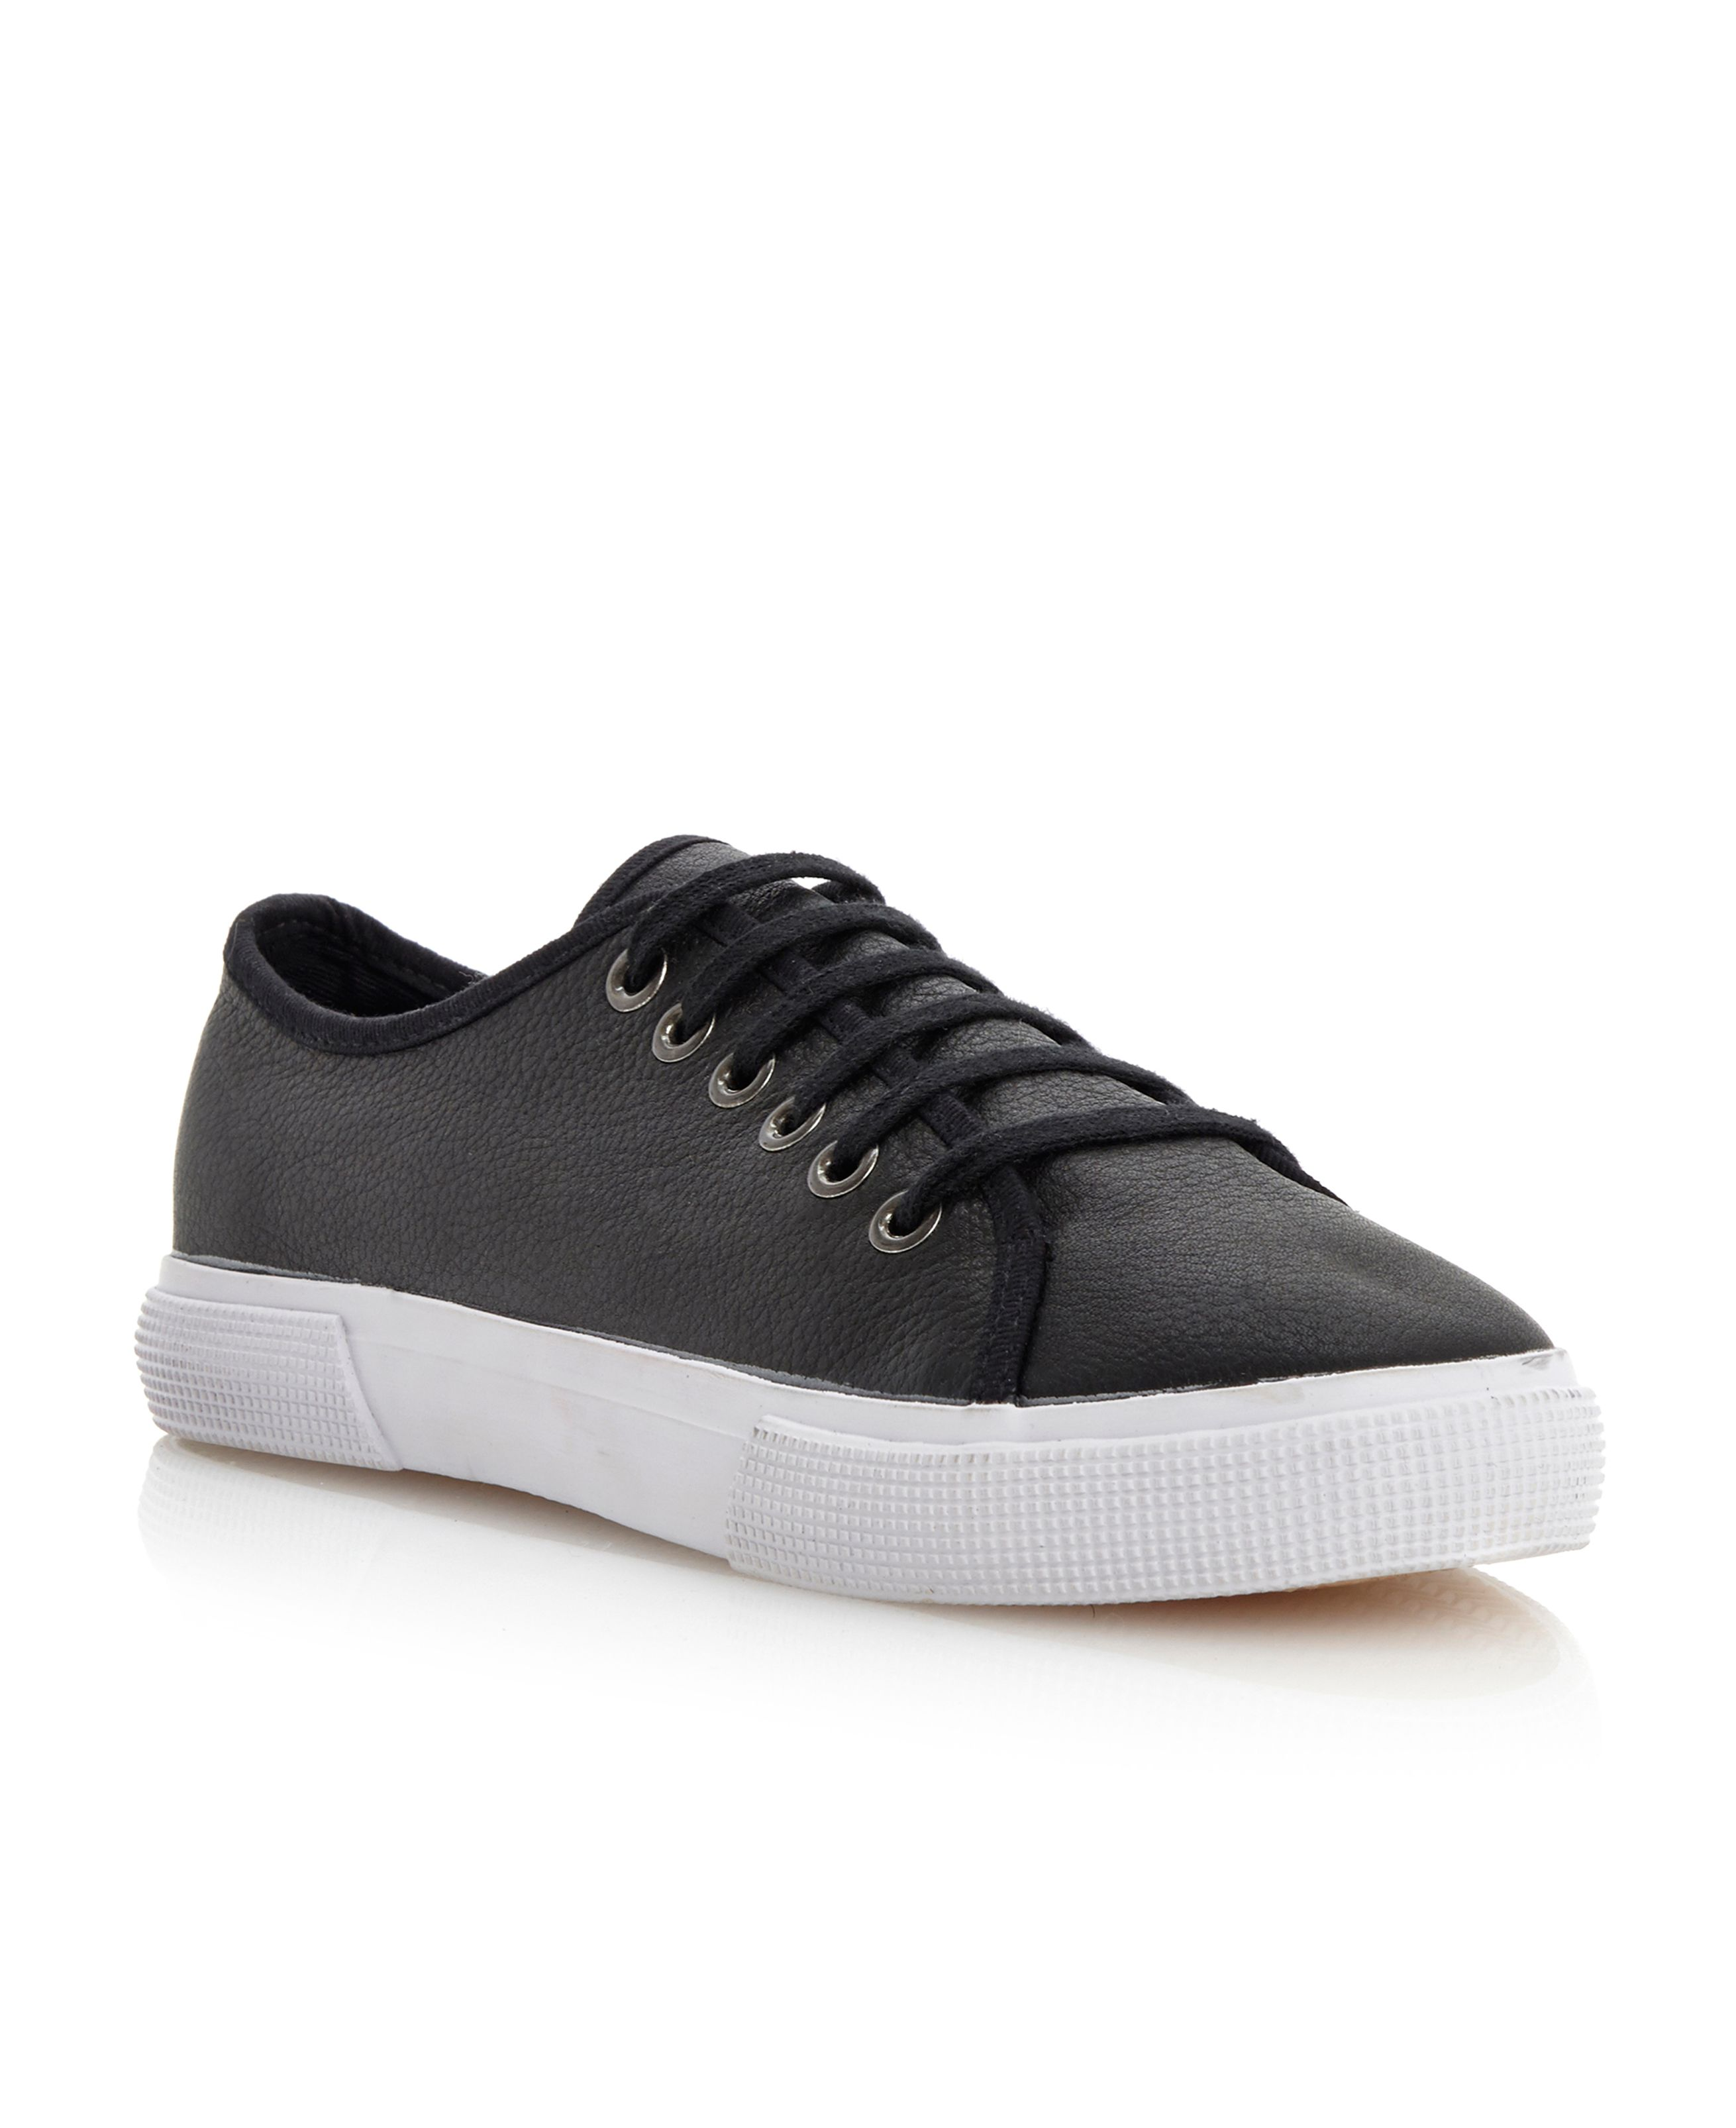 Potter flatform lace up trainer shoes